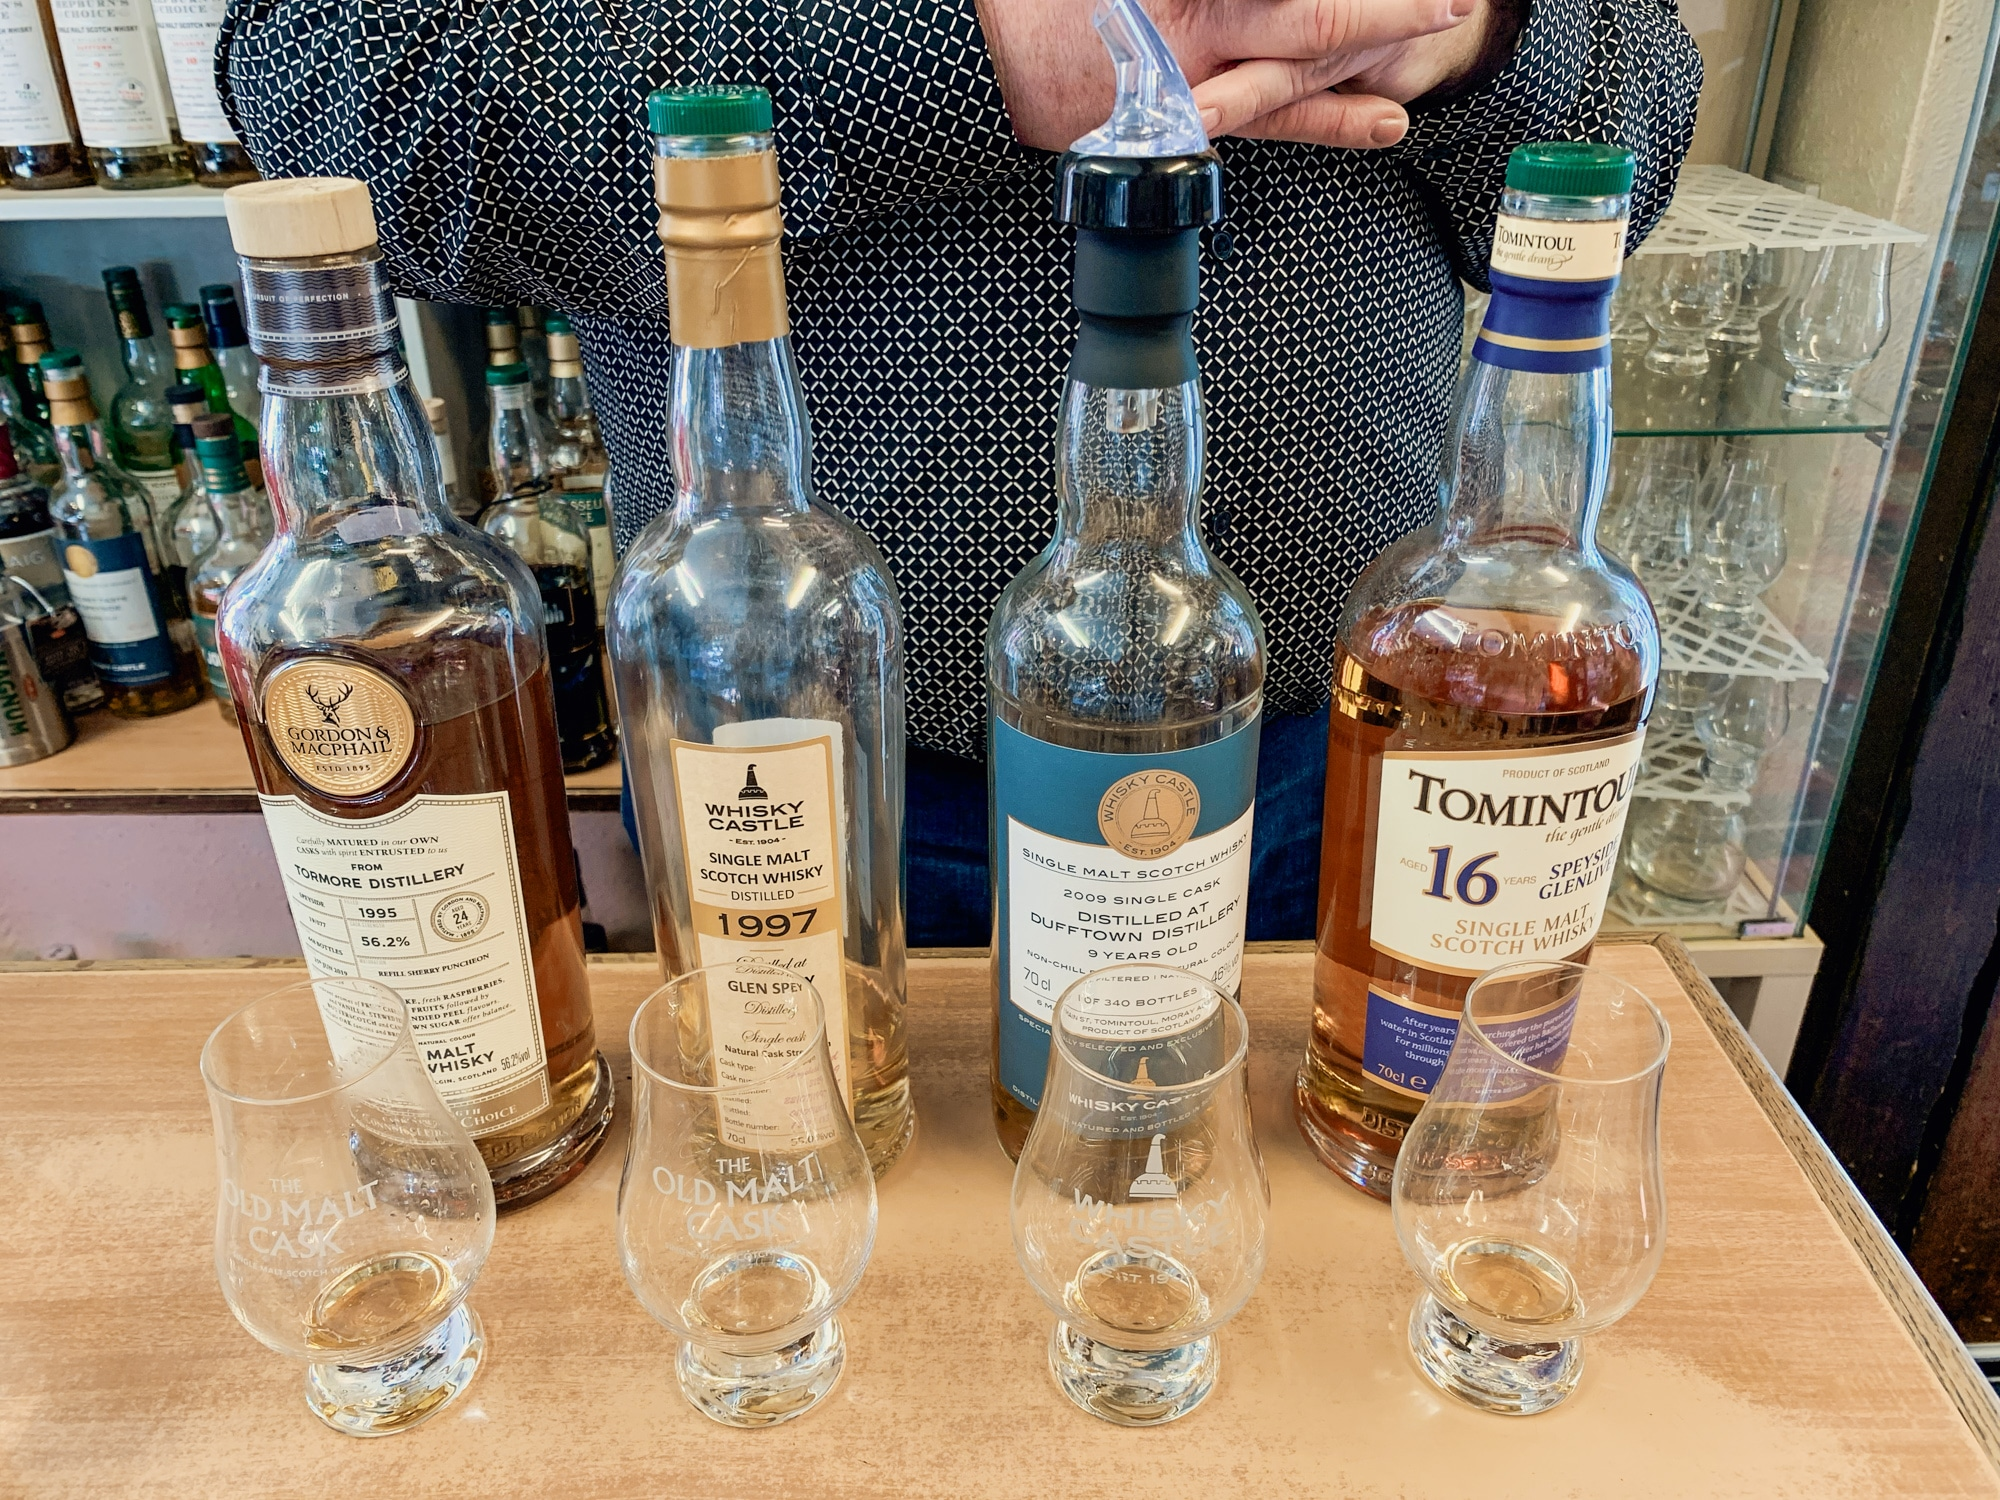 Whisky Verkostung in Schottland: Tipps fürs Whisky Tasting in 4 Schritten - Whisky Castle in Tomintoul